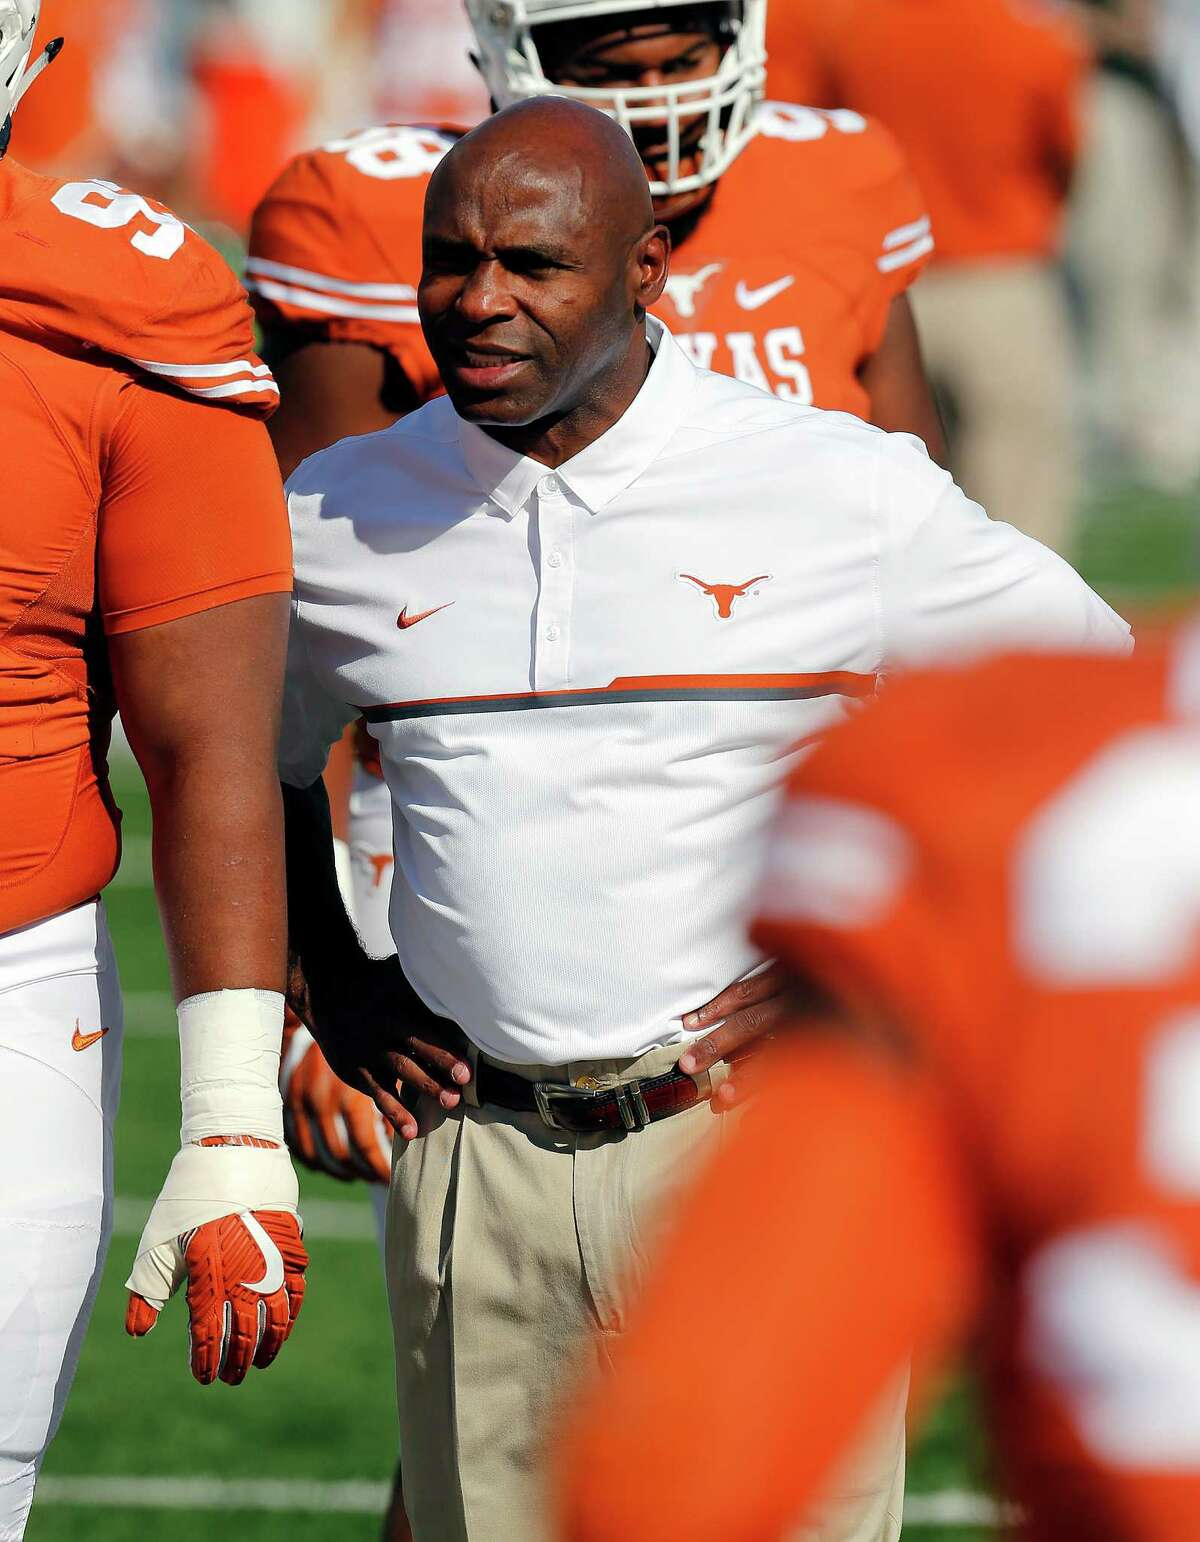 AUSTIN, TX - NOVEMBER 12: Head coach Charlie Strong of the Texas Longhorns watches his team before the game with the West Virginia Mountaineers at Darrell K Royal -Texas Memorial Stadium on November 12, 2016 in Austin, Texas.